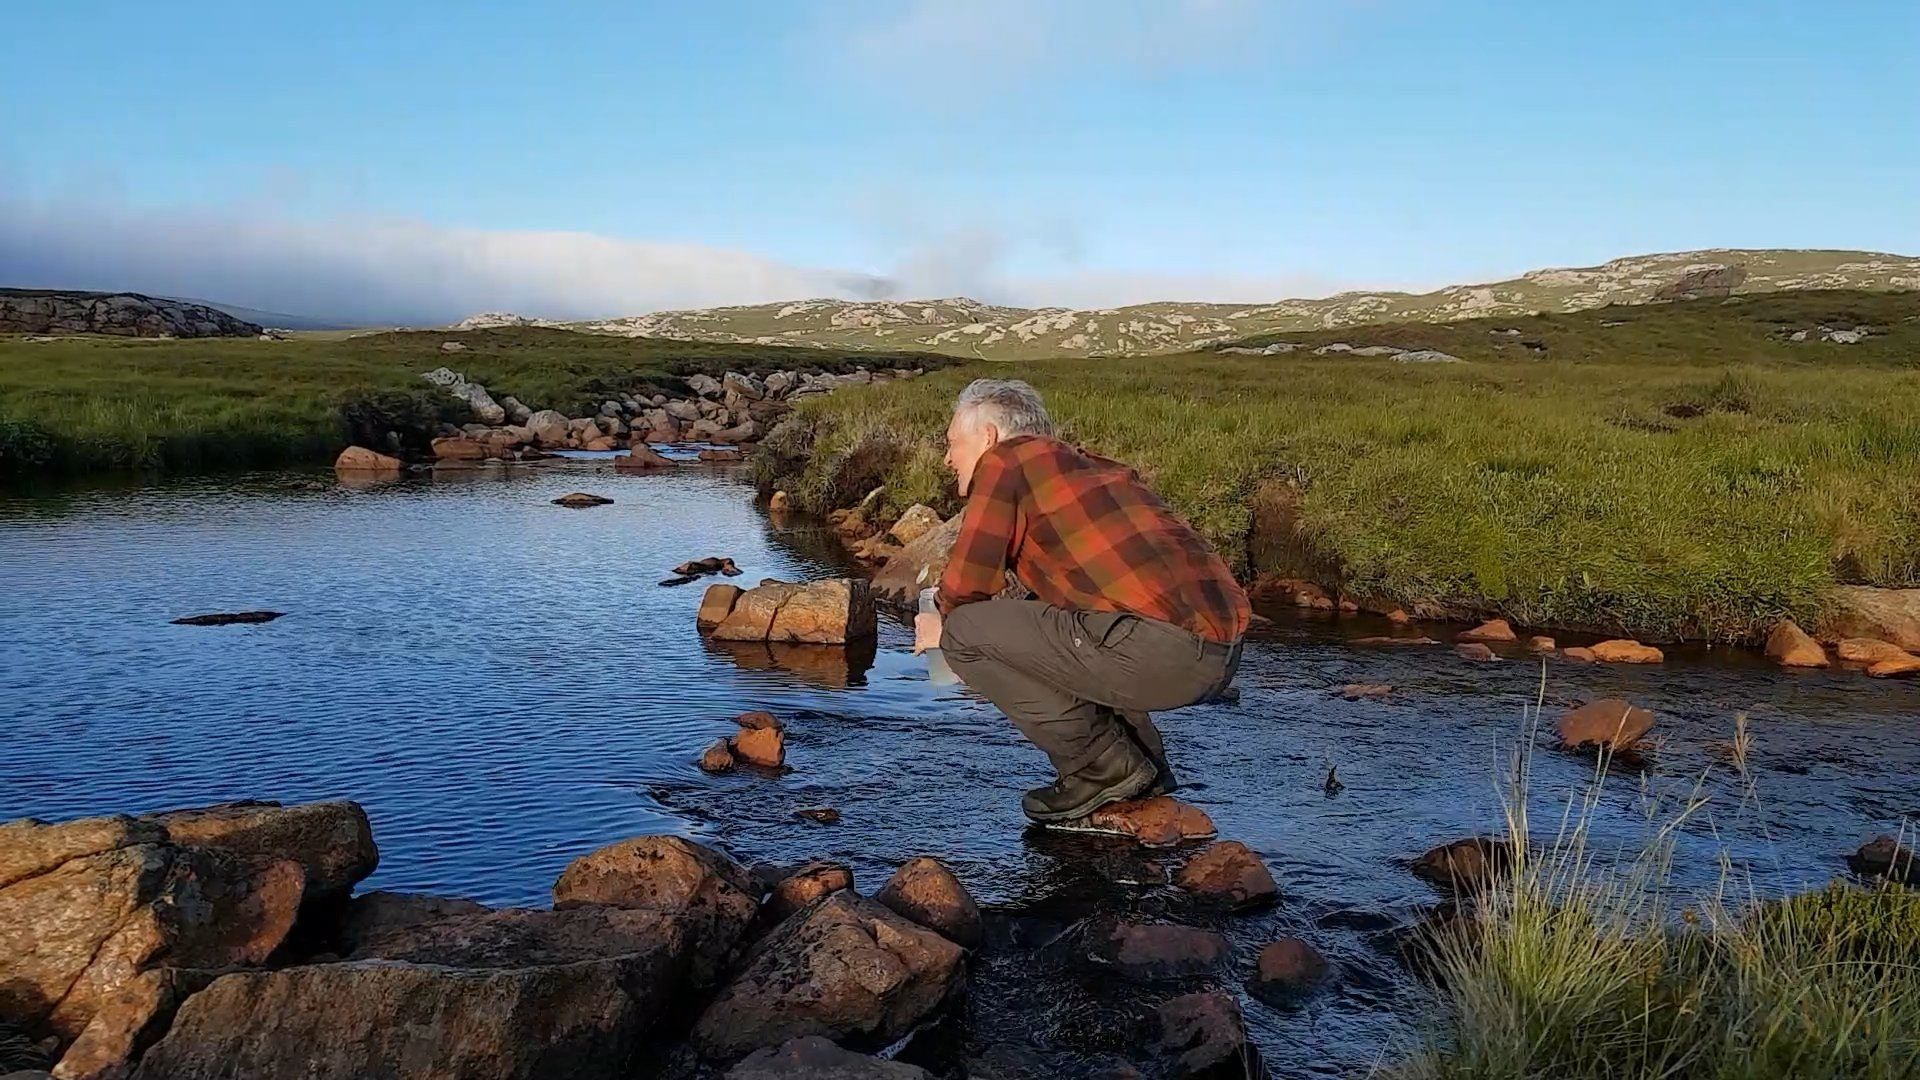 Collecting fresh water from the peaty burn at Strath Chailleach, near Cape Wrath, NW Scotland